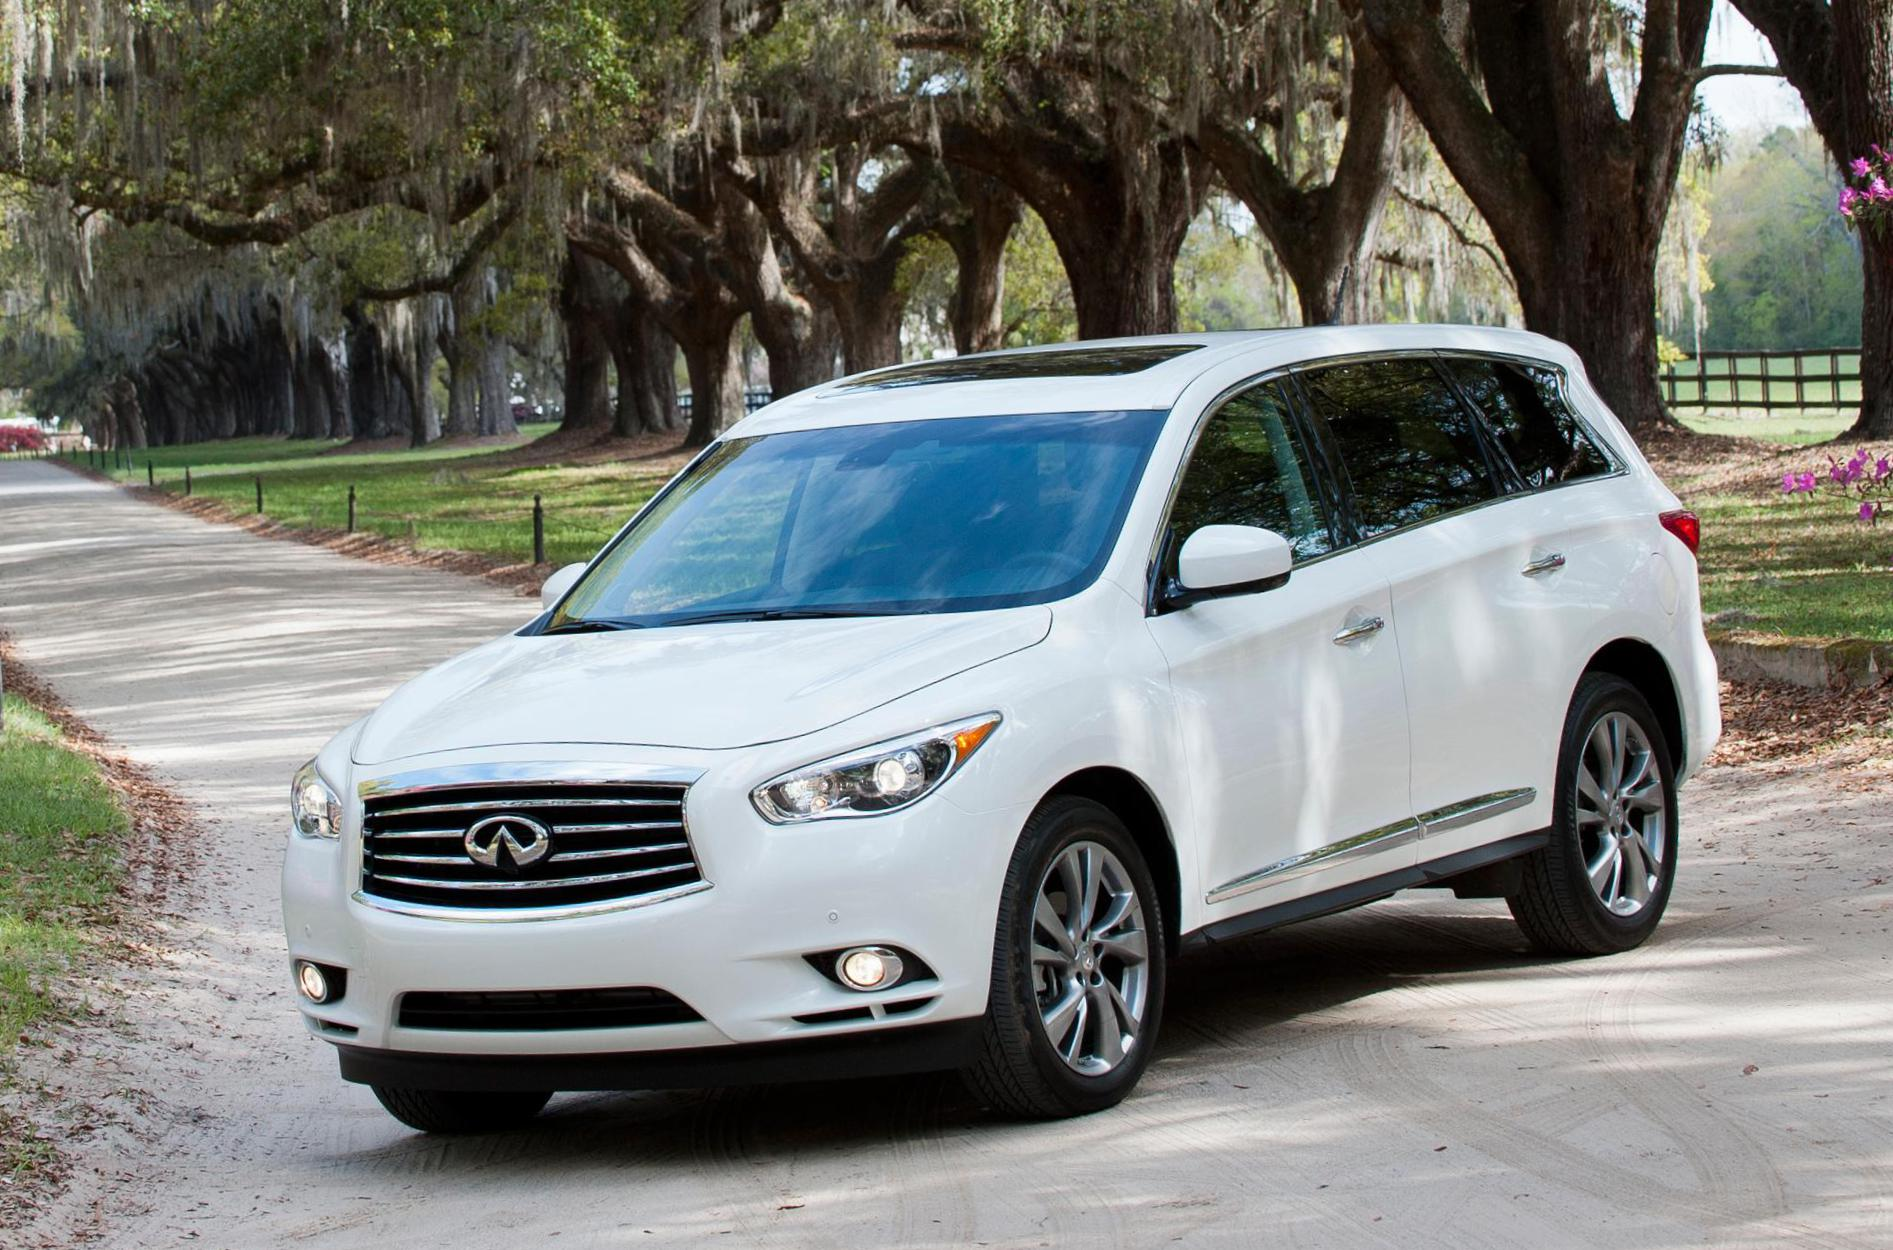 clo lease full listings car offers suv infiniti infinity